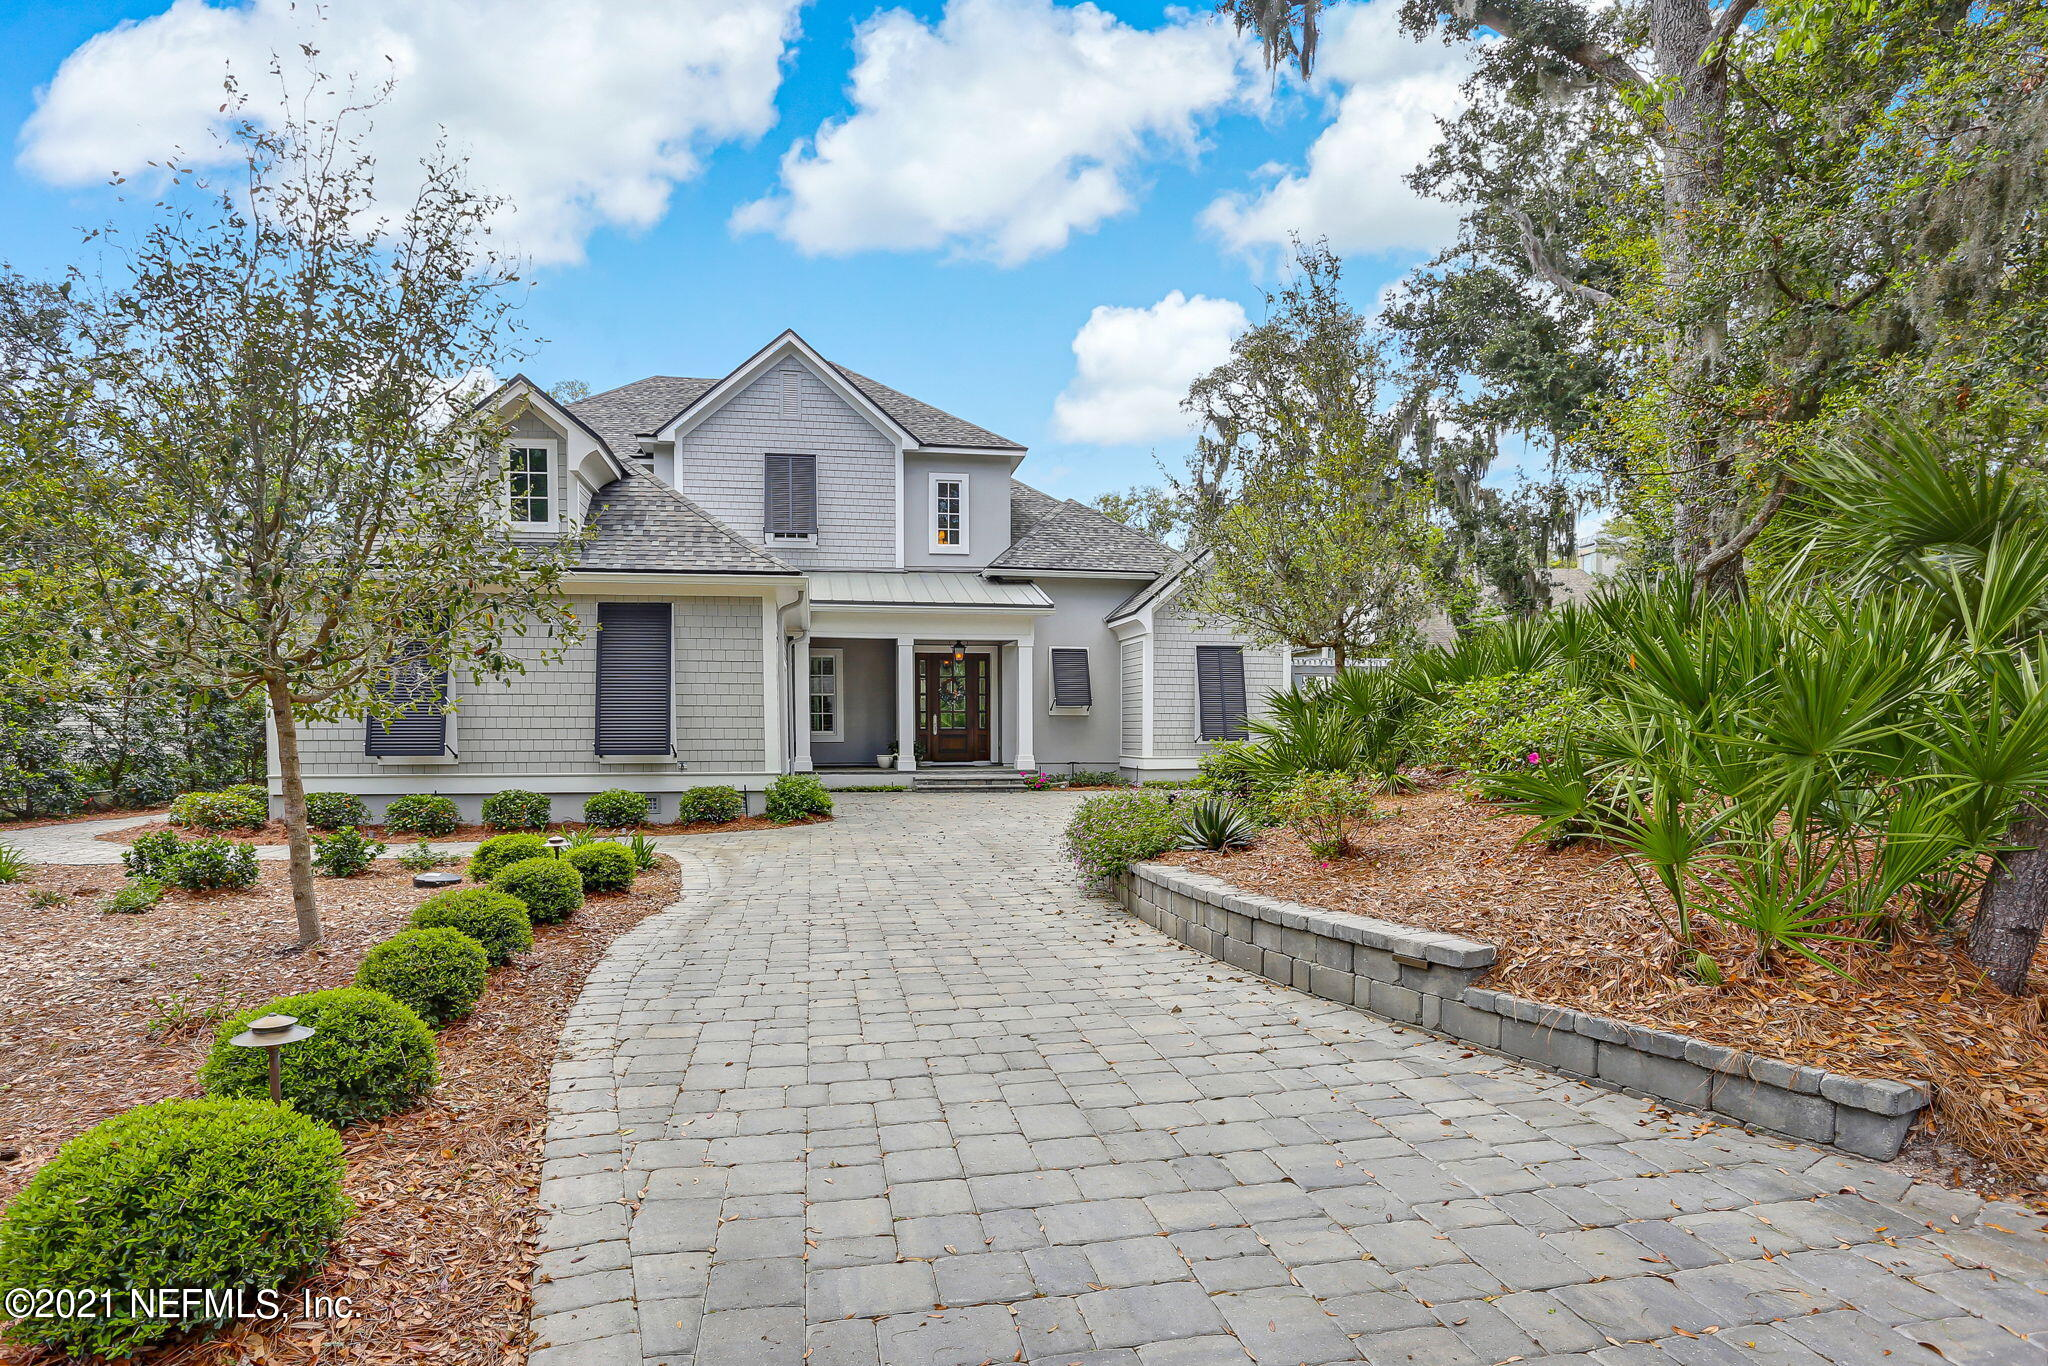 A beautiful, 4,000+ square foot home inside the Amelia Island Plantation that was custom built just for you. Enjoy views of the Oak Marsh Golf Course from the comfort of the private screened in lanai with inground saltwater pool, heated spa, outdoor fireplace, and outdoor grill area. Notice the quality in every detail from the custom European oak wood flooring to high ceilings to high end appliances and private baths with each bedroom. Entertaining is a breeze with a bonus room with a wet bar upstairs overlooking the golf course and an additional wet bar and wine room downstairs. Plenty of space for all of your beach toys and golfing necessities in the 2-car garage and separate bay for golf cart storage. Looking for unique features and luxurious upgrades? You've found it.